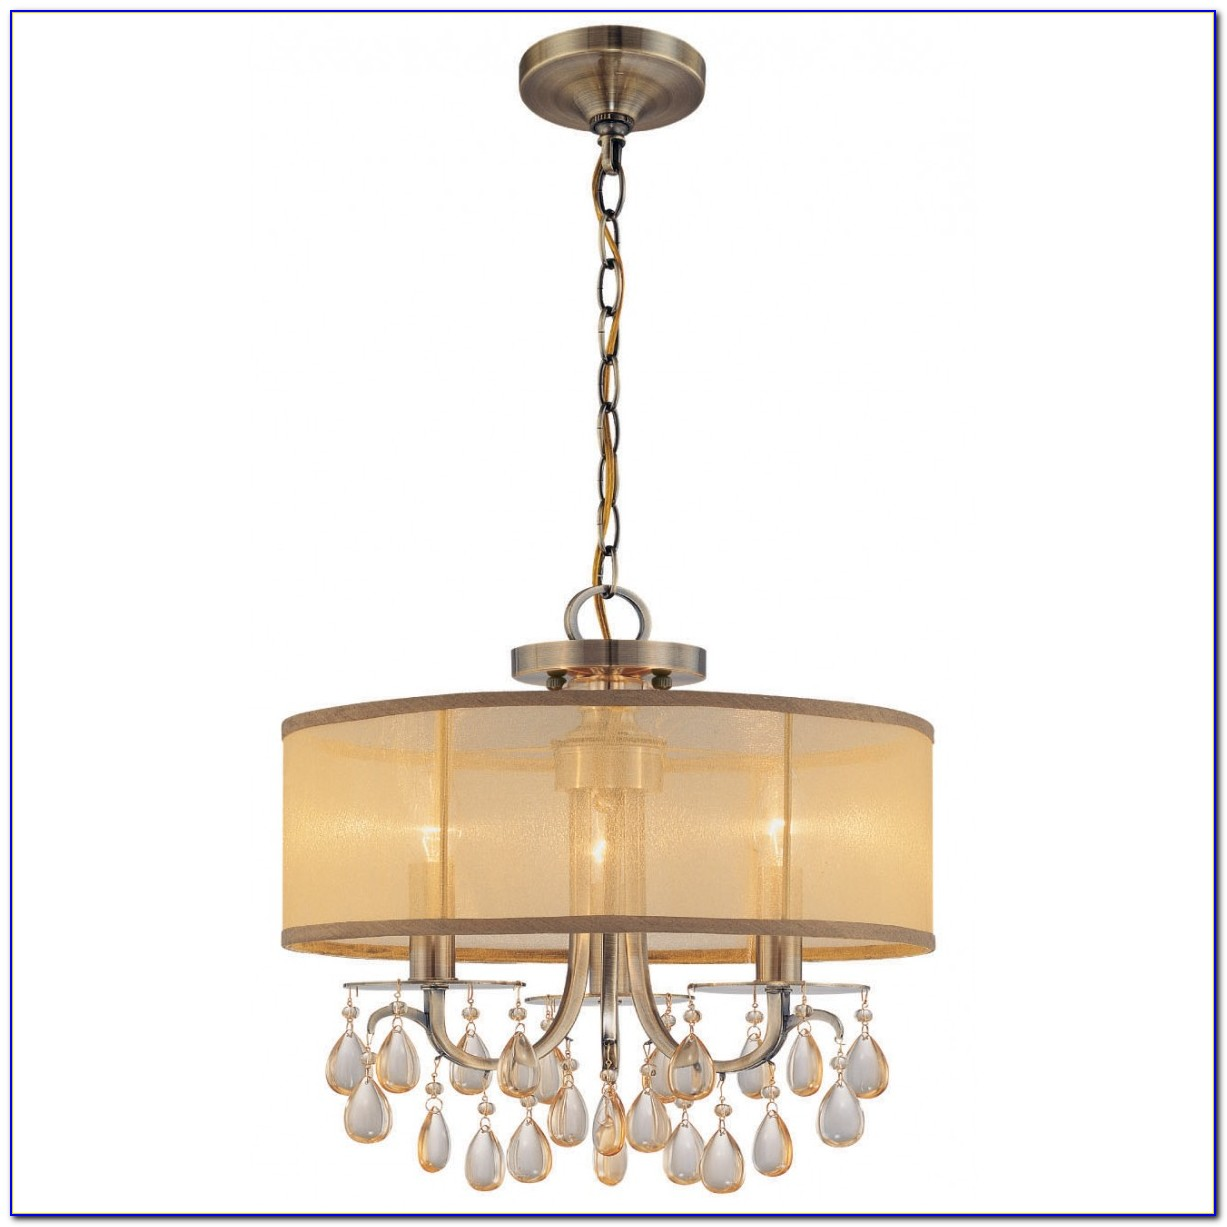 Ceiling Flush Mount Crystal Chandelier